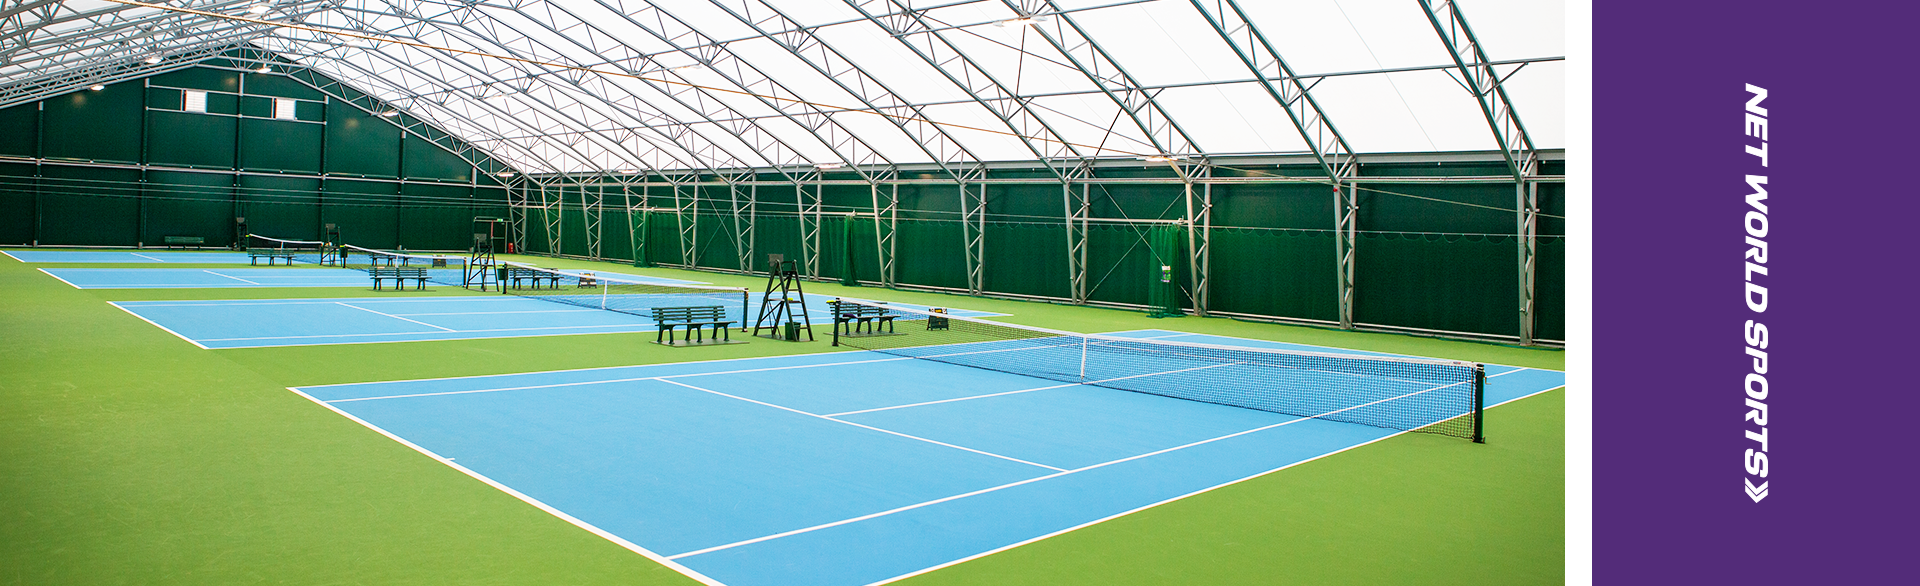 Ellesmere College Tennis Centre